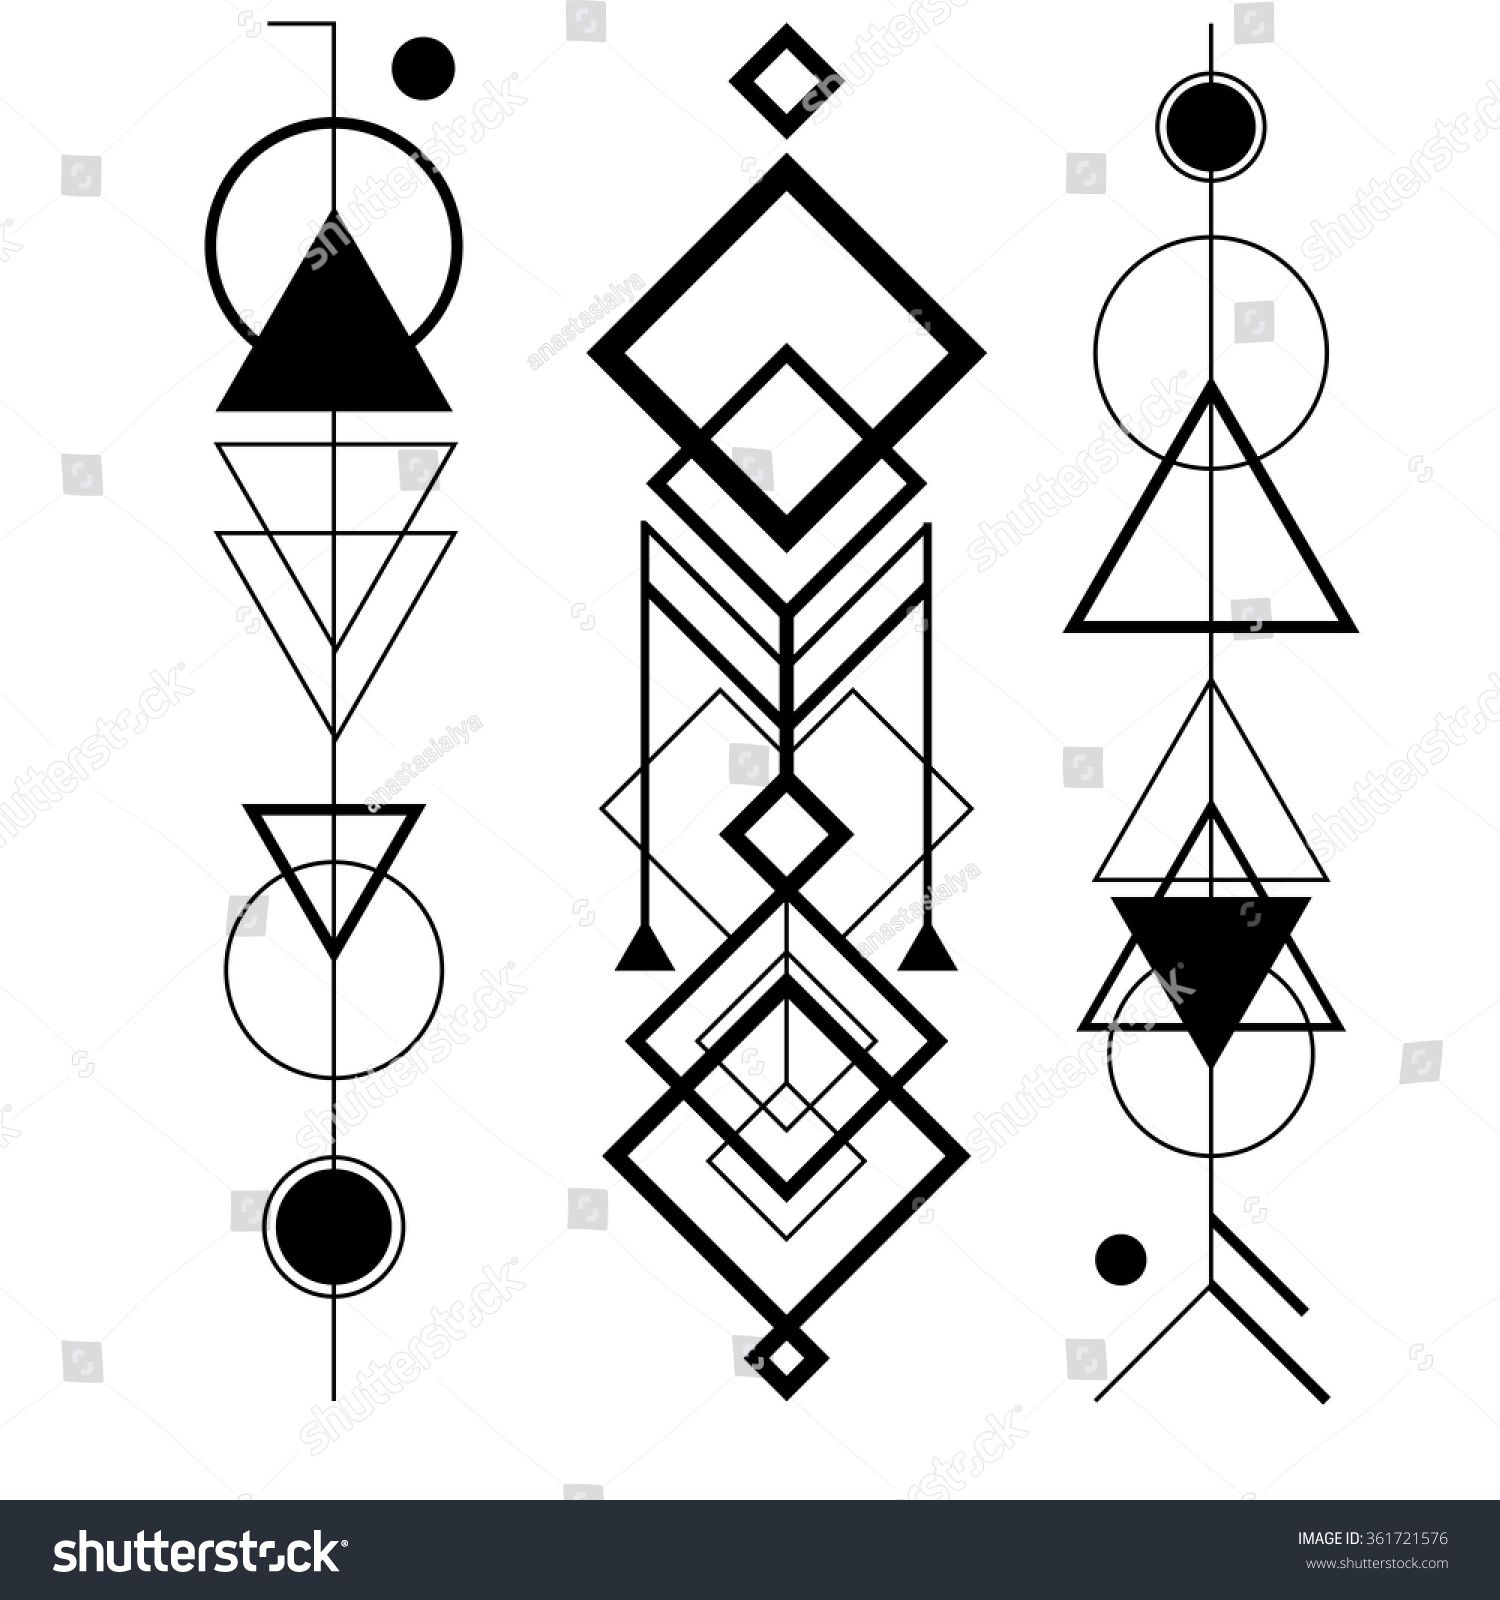 This elegant and simple shapes are